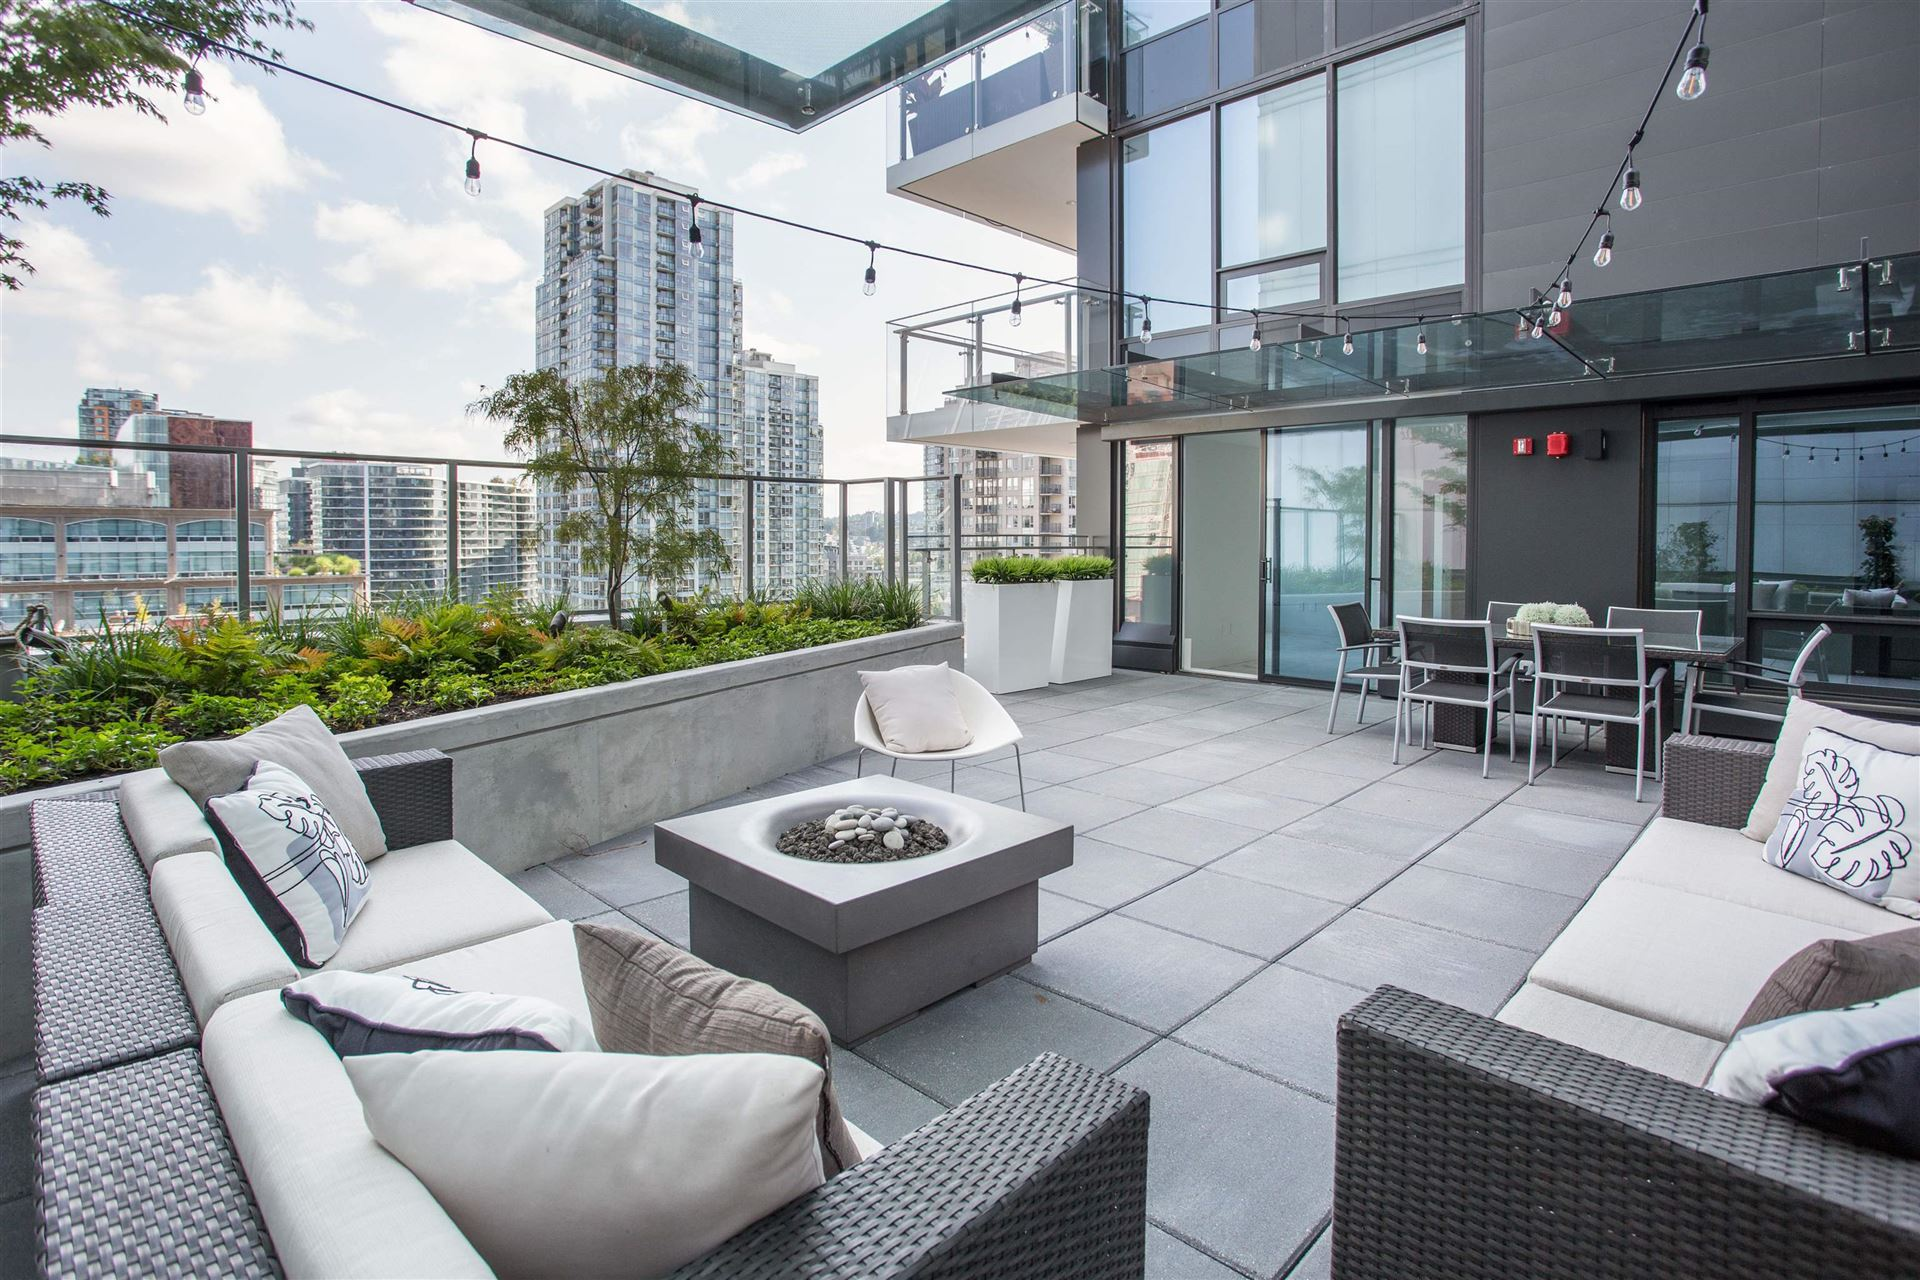 Photo for 902 885 CAMBIE STREET, Vancouver, BC V6B 0R6 (MLS # R2611070)